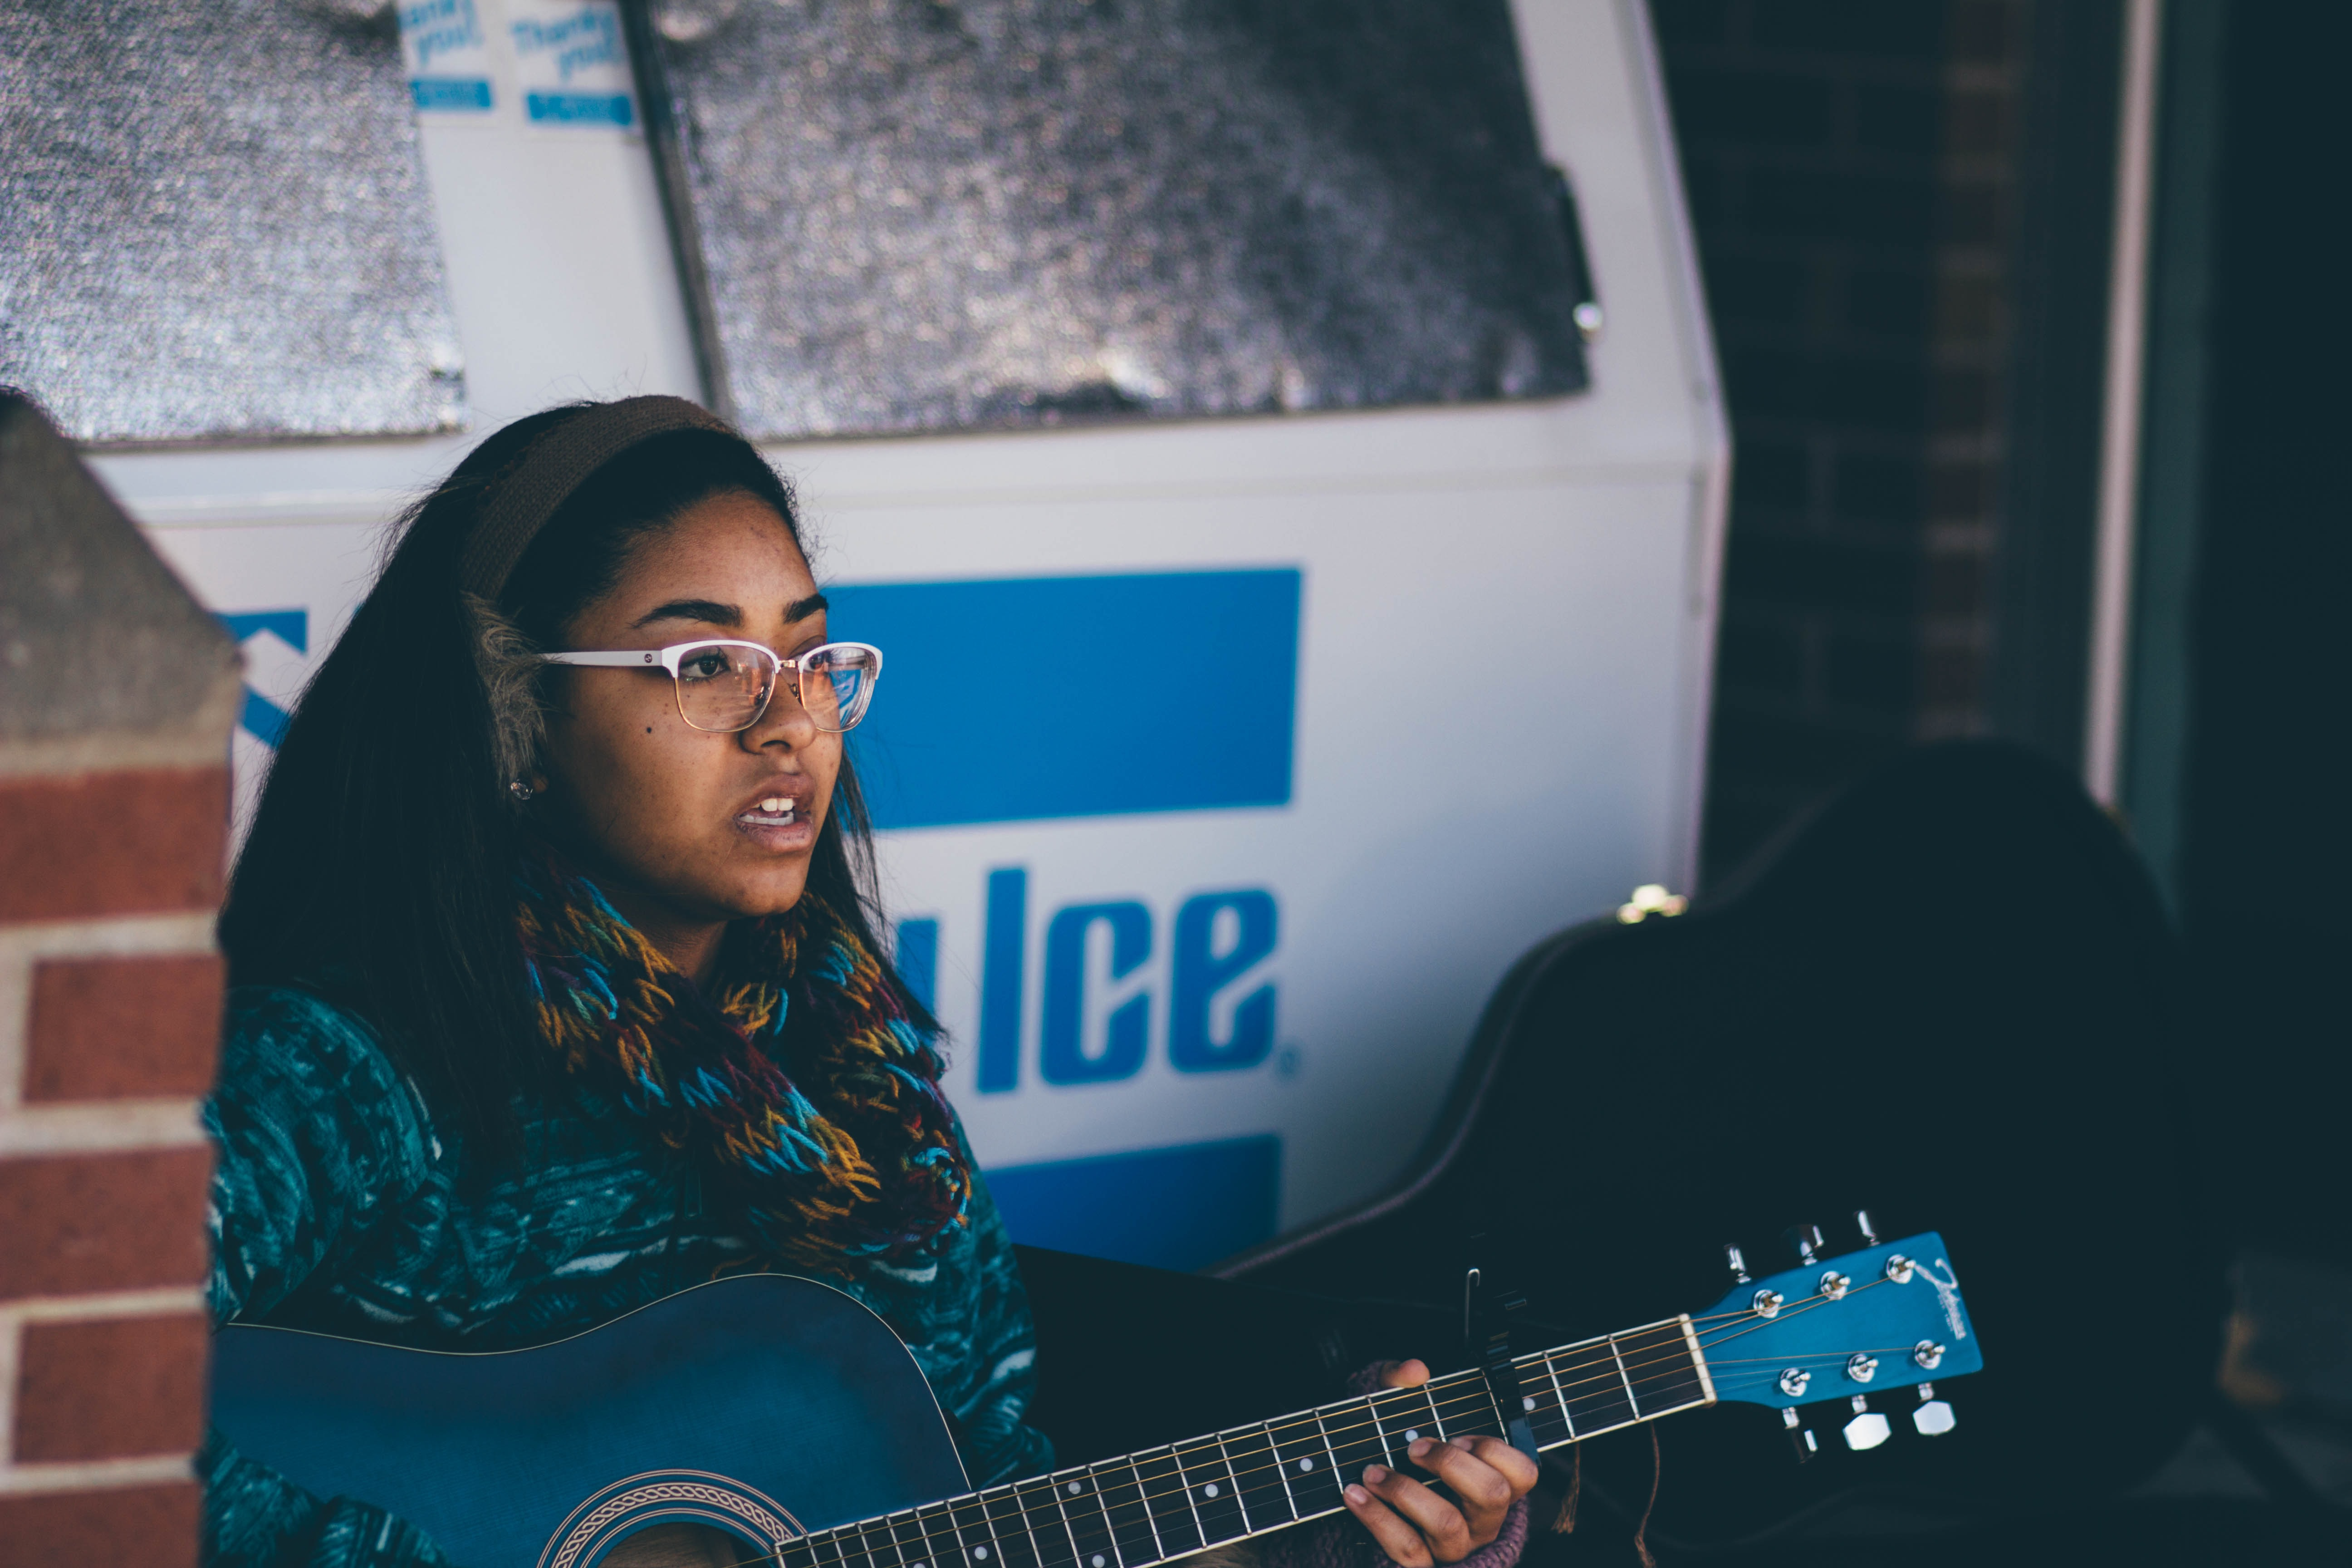 A woman in glasses and earmuffs playing a blue acoustic guitar near a building